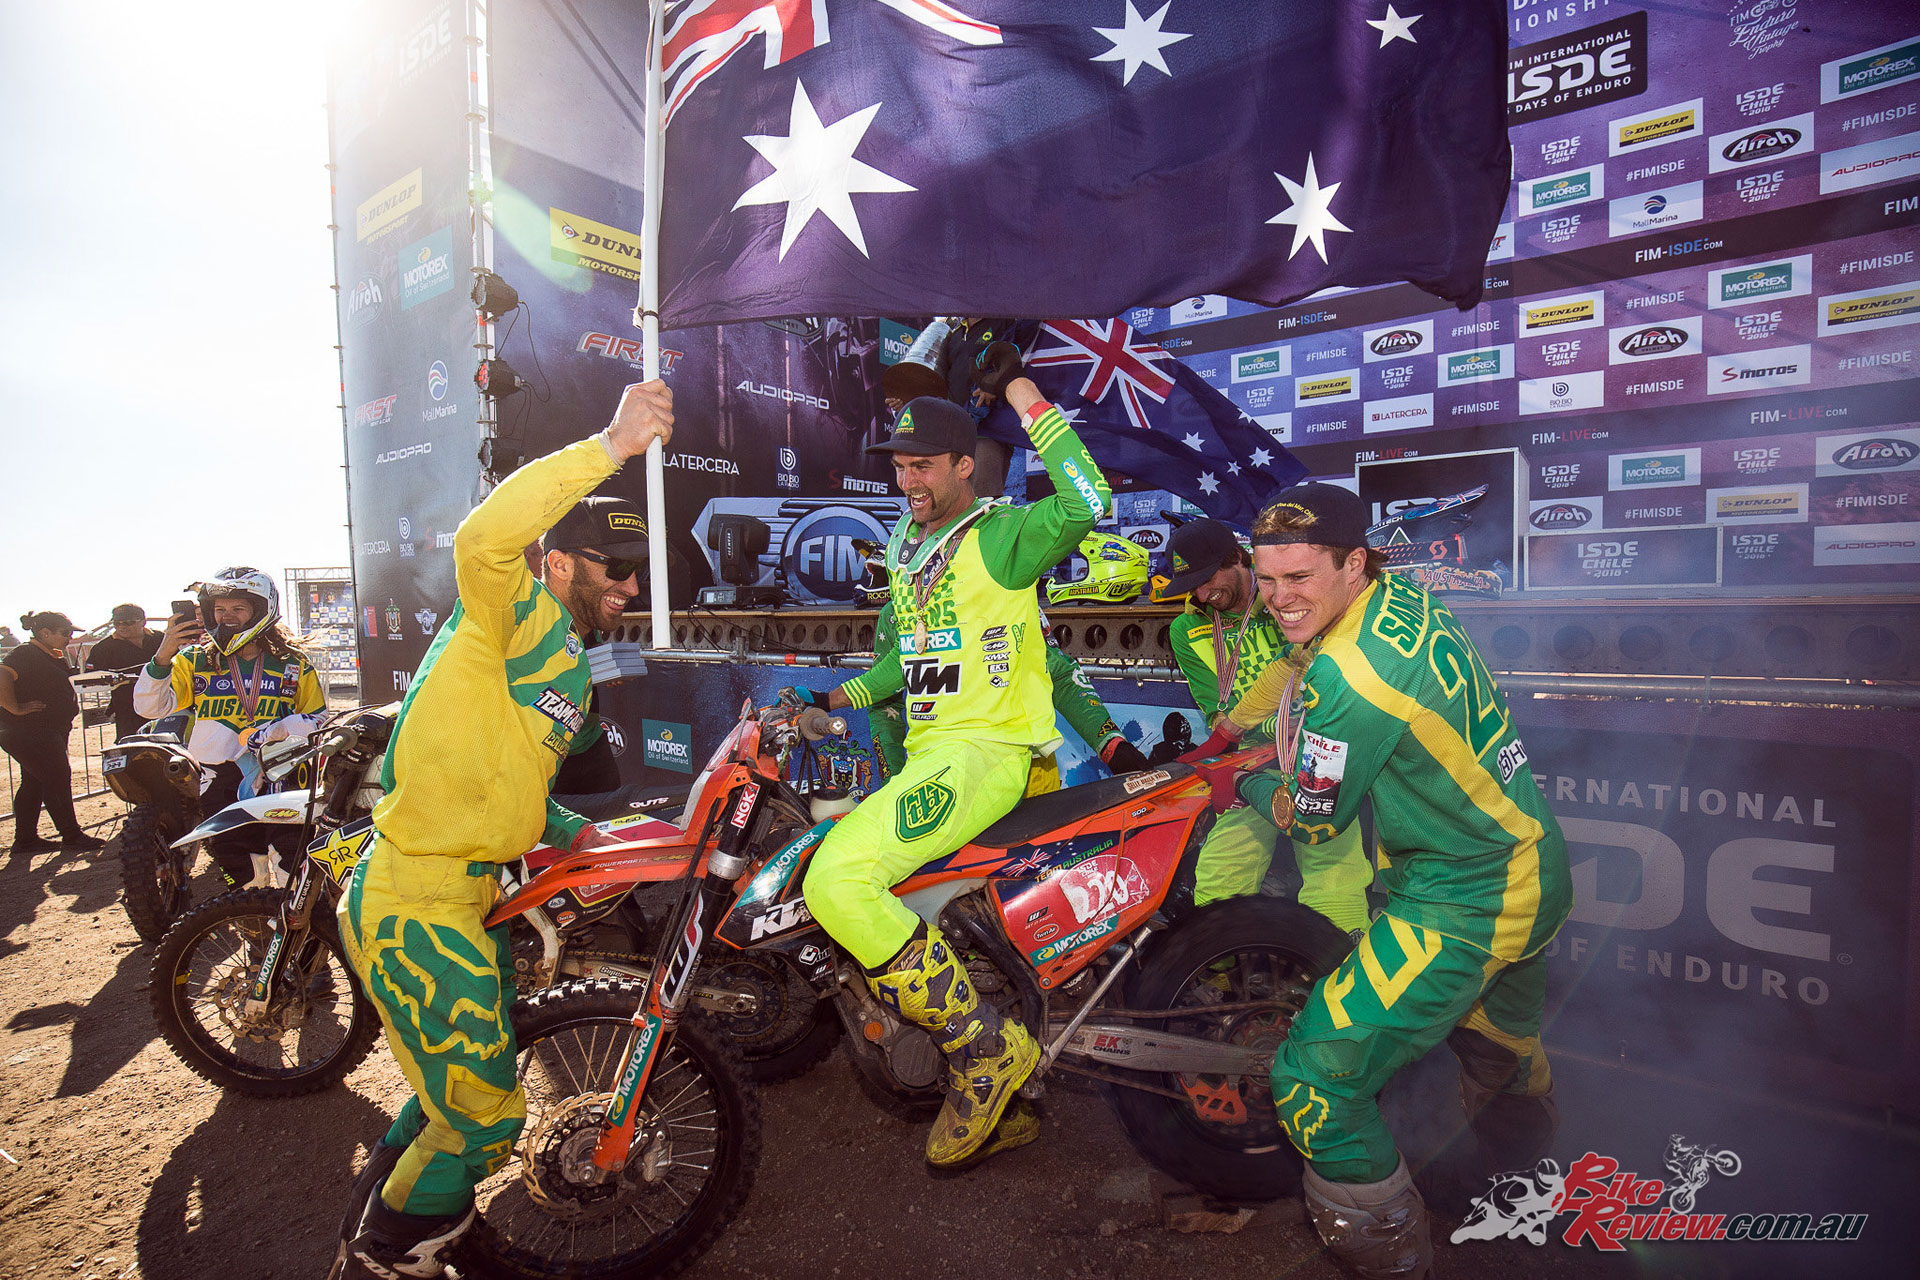 Team Australia - 2018 ISDE - Image by John Pearson Media